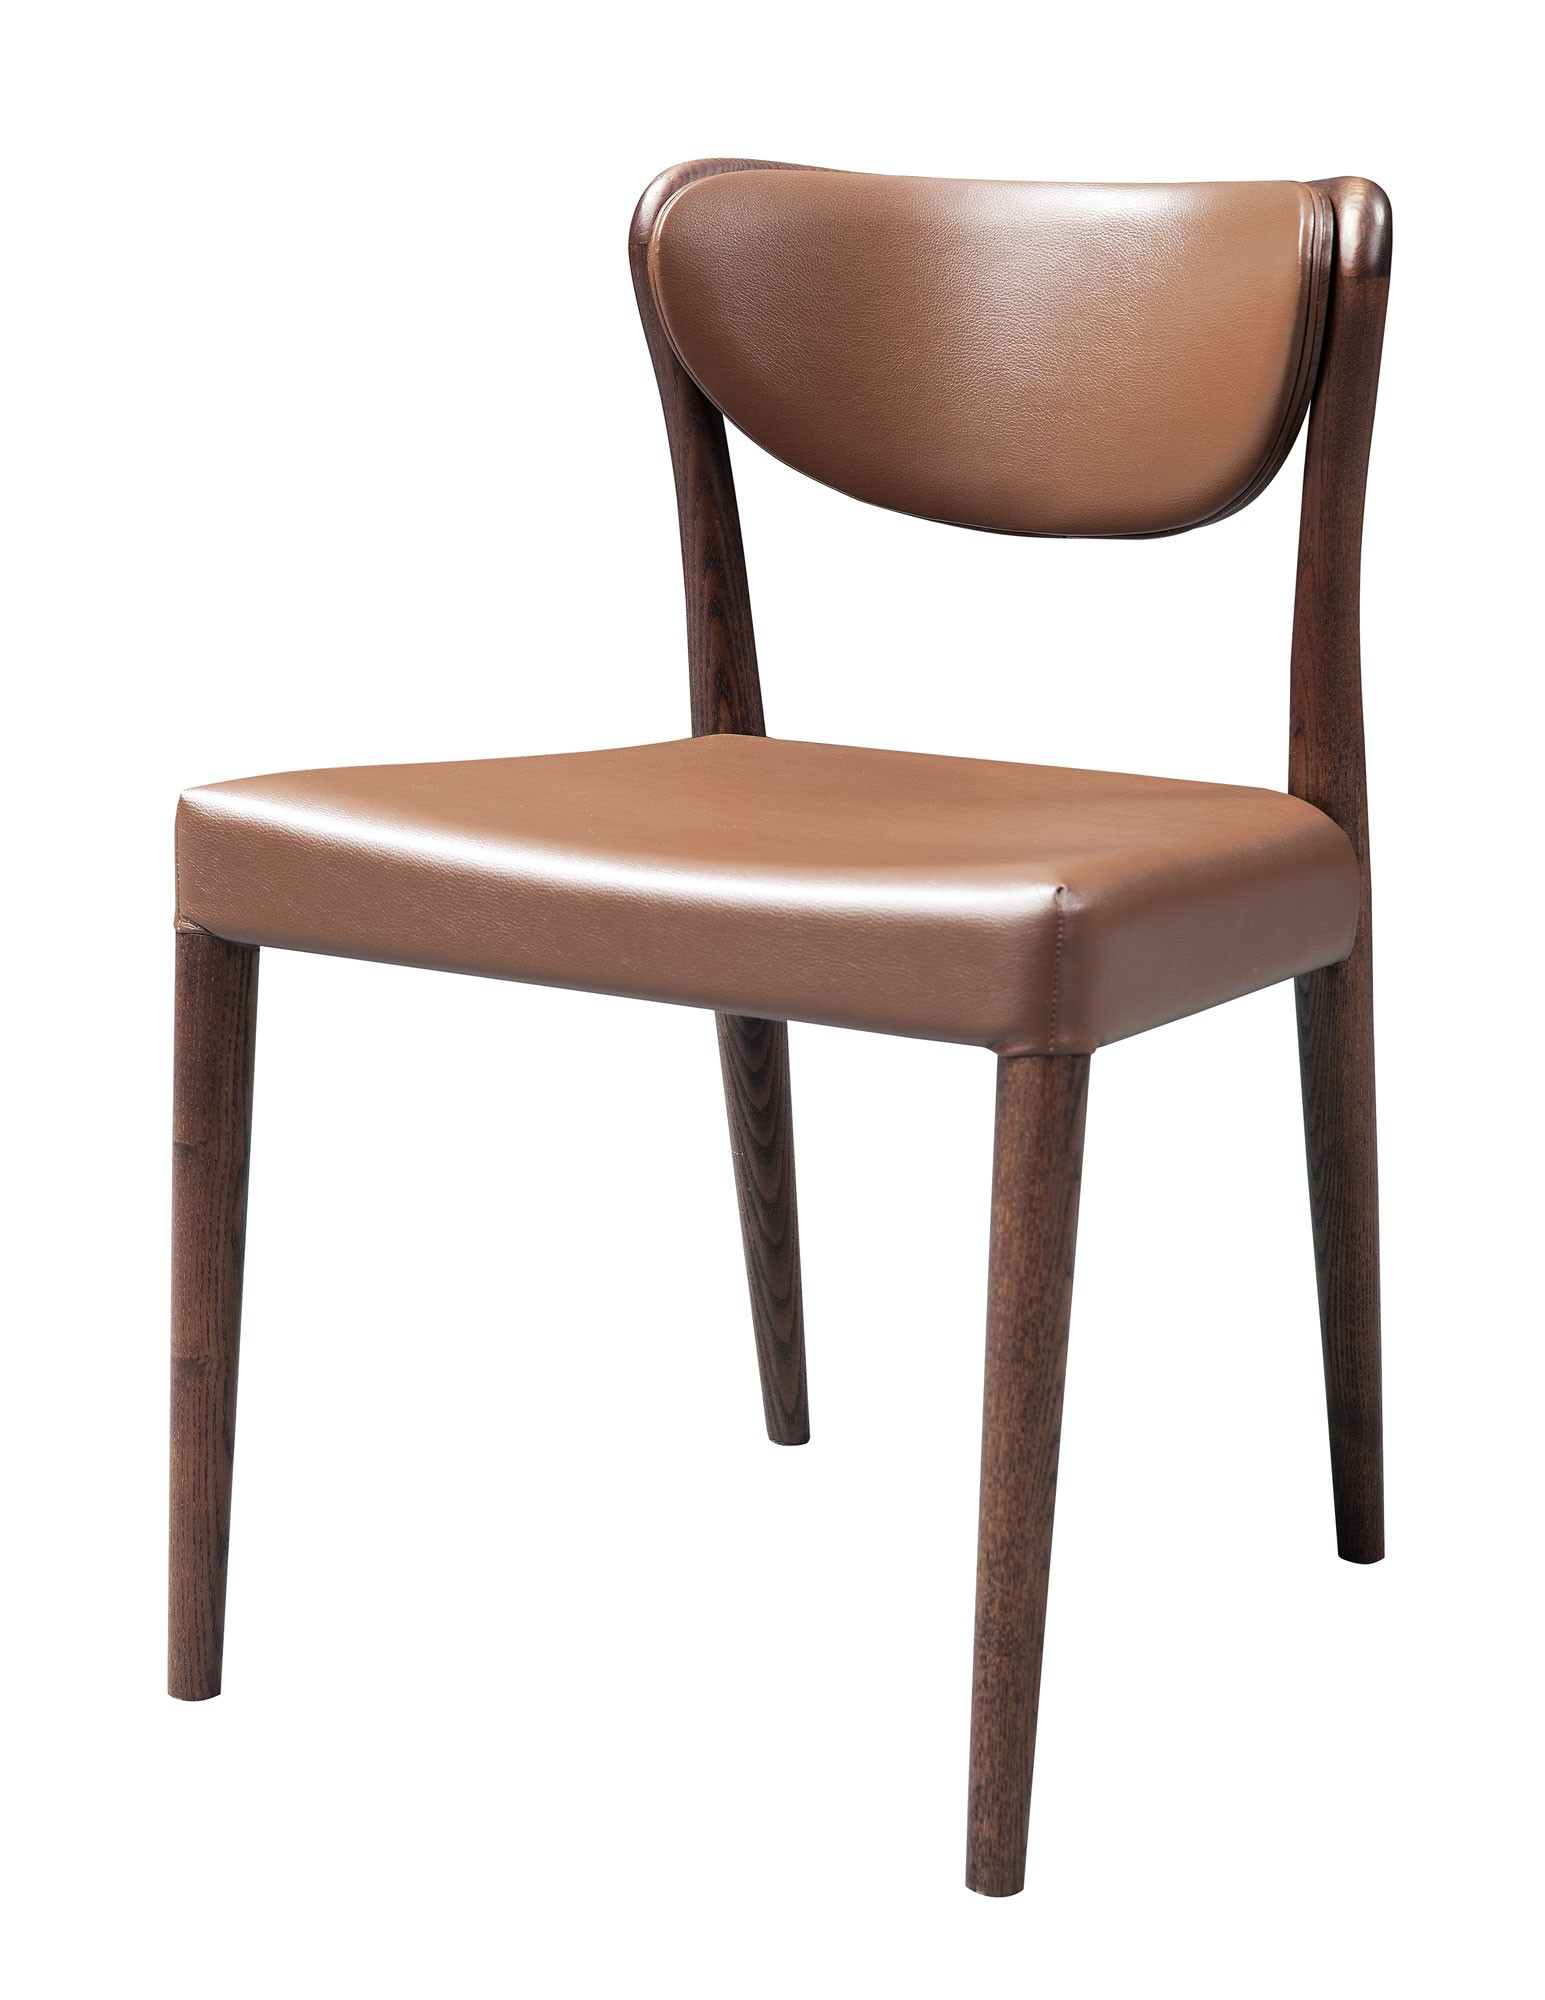 Confortable Chairs What Makes A Modern Dining Room Chair Comfortable La